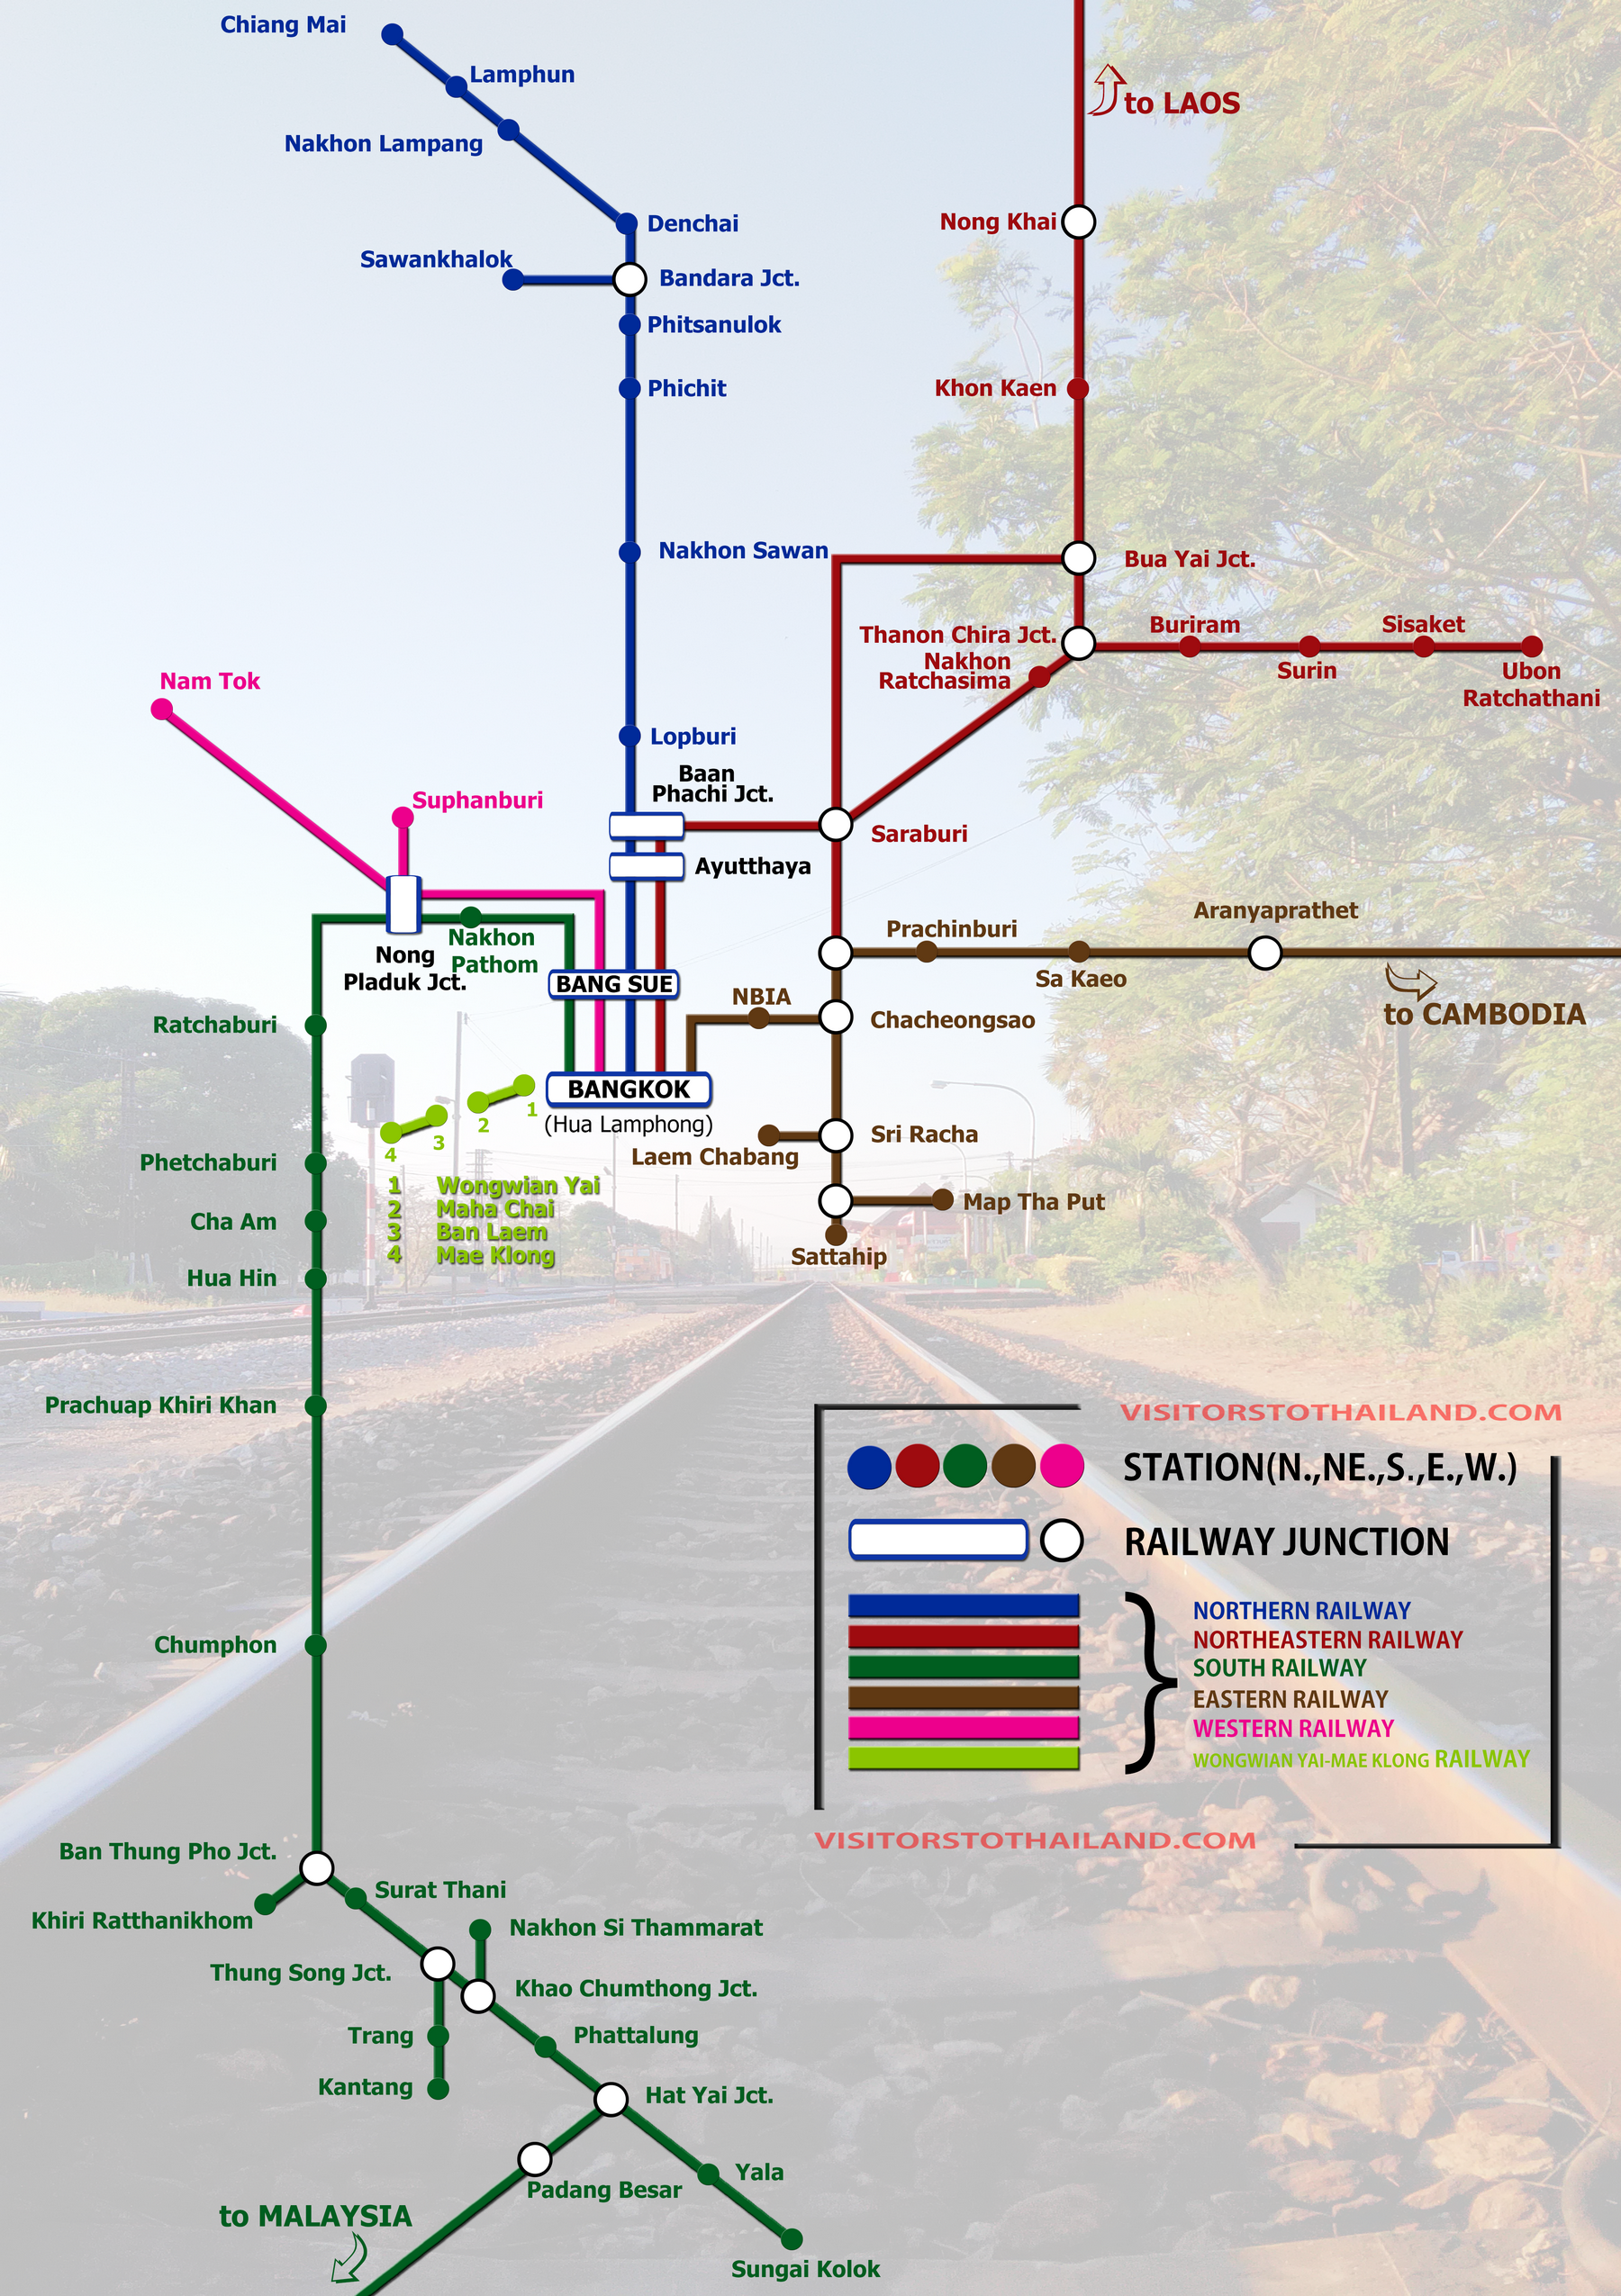 State Railway of Thailand Route